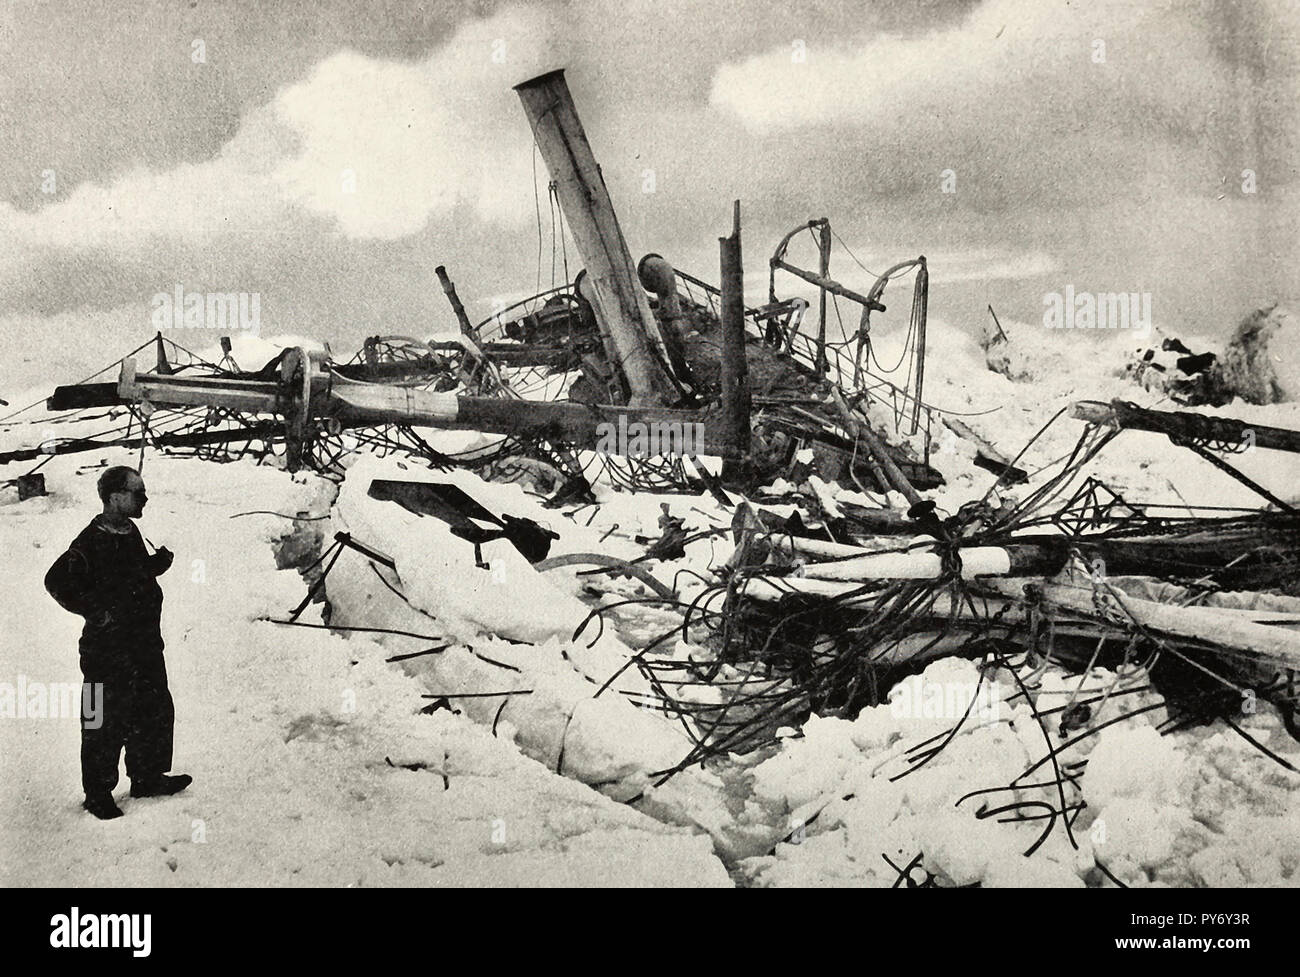 The ship was dead. Her proud timbers were rent apart and scattered in savage confusion. The wreck of the Endurance during the Shackleton Expedition - Stock Image